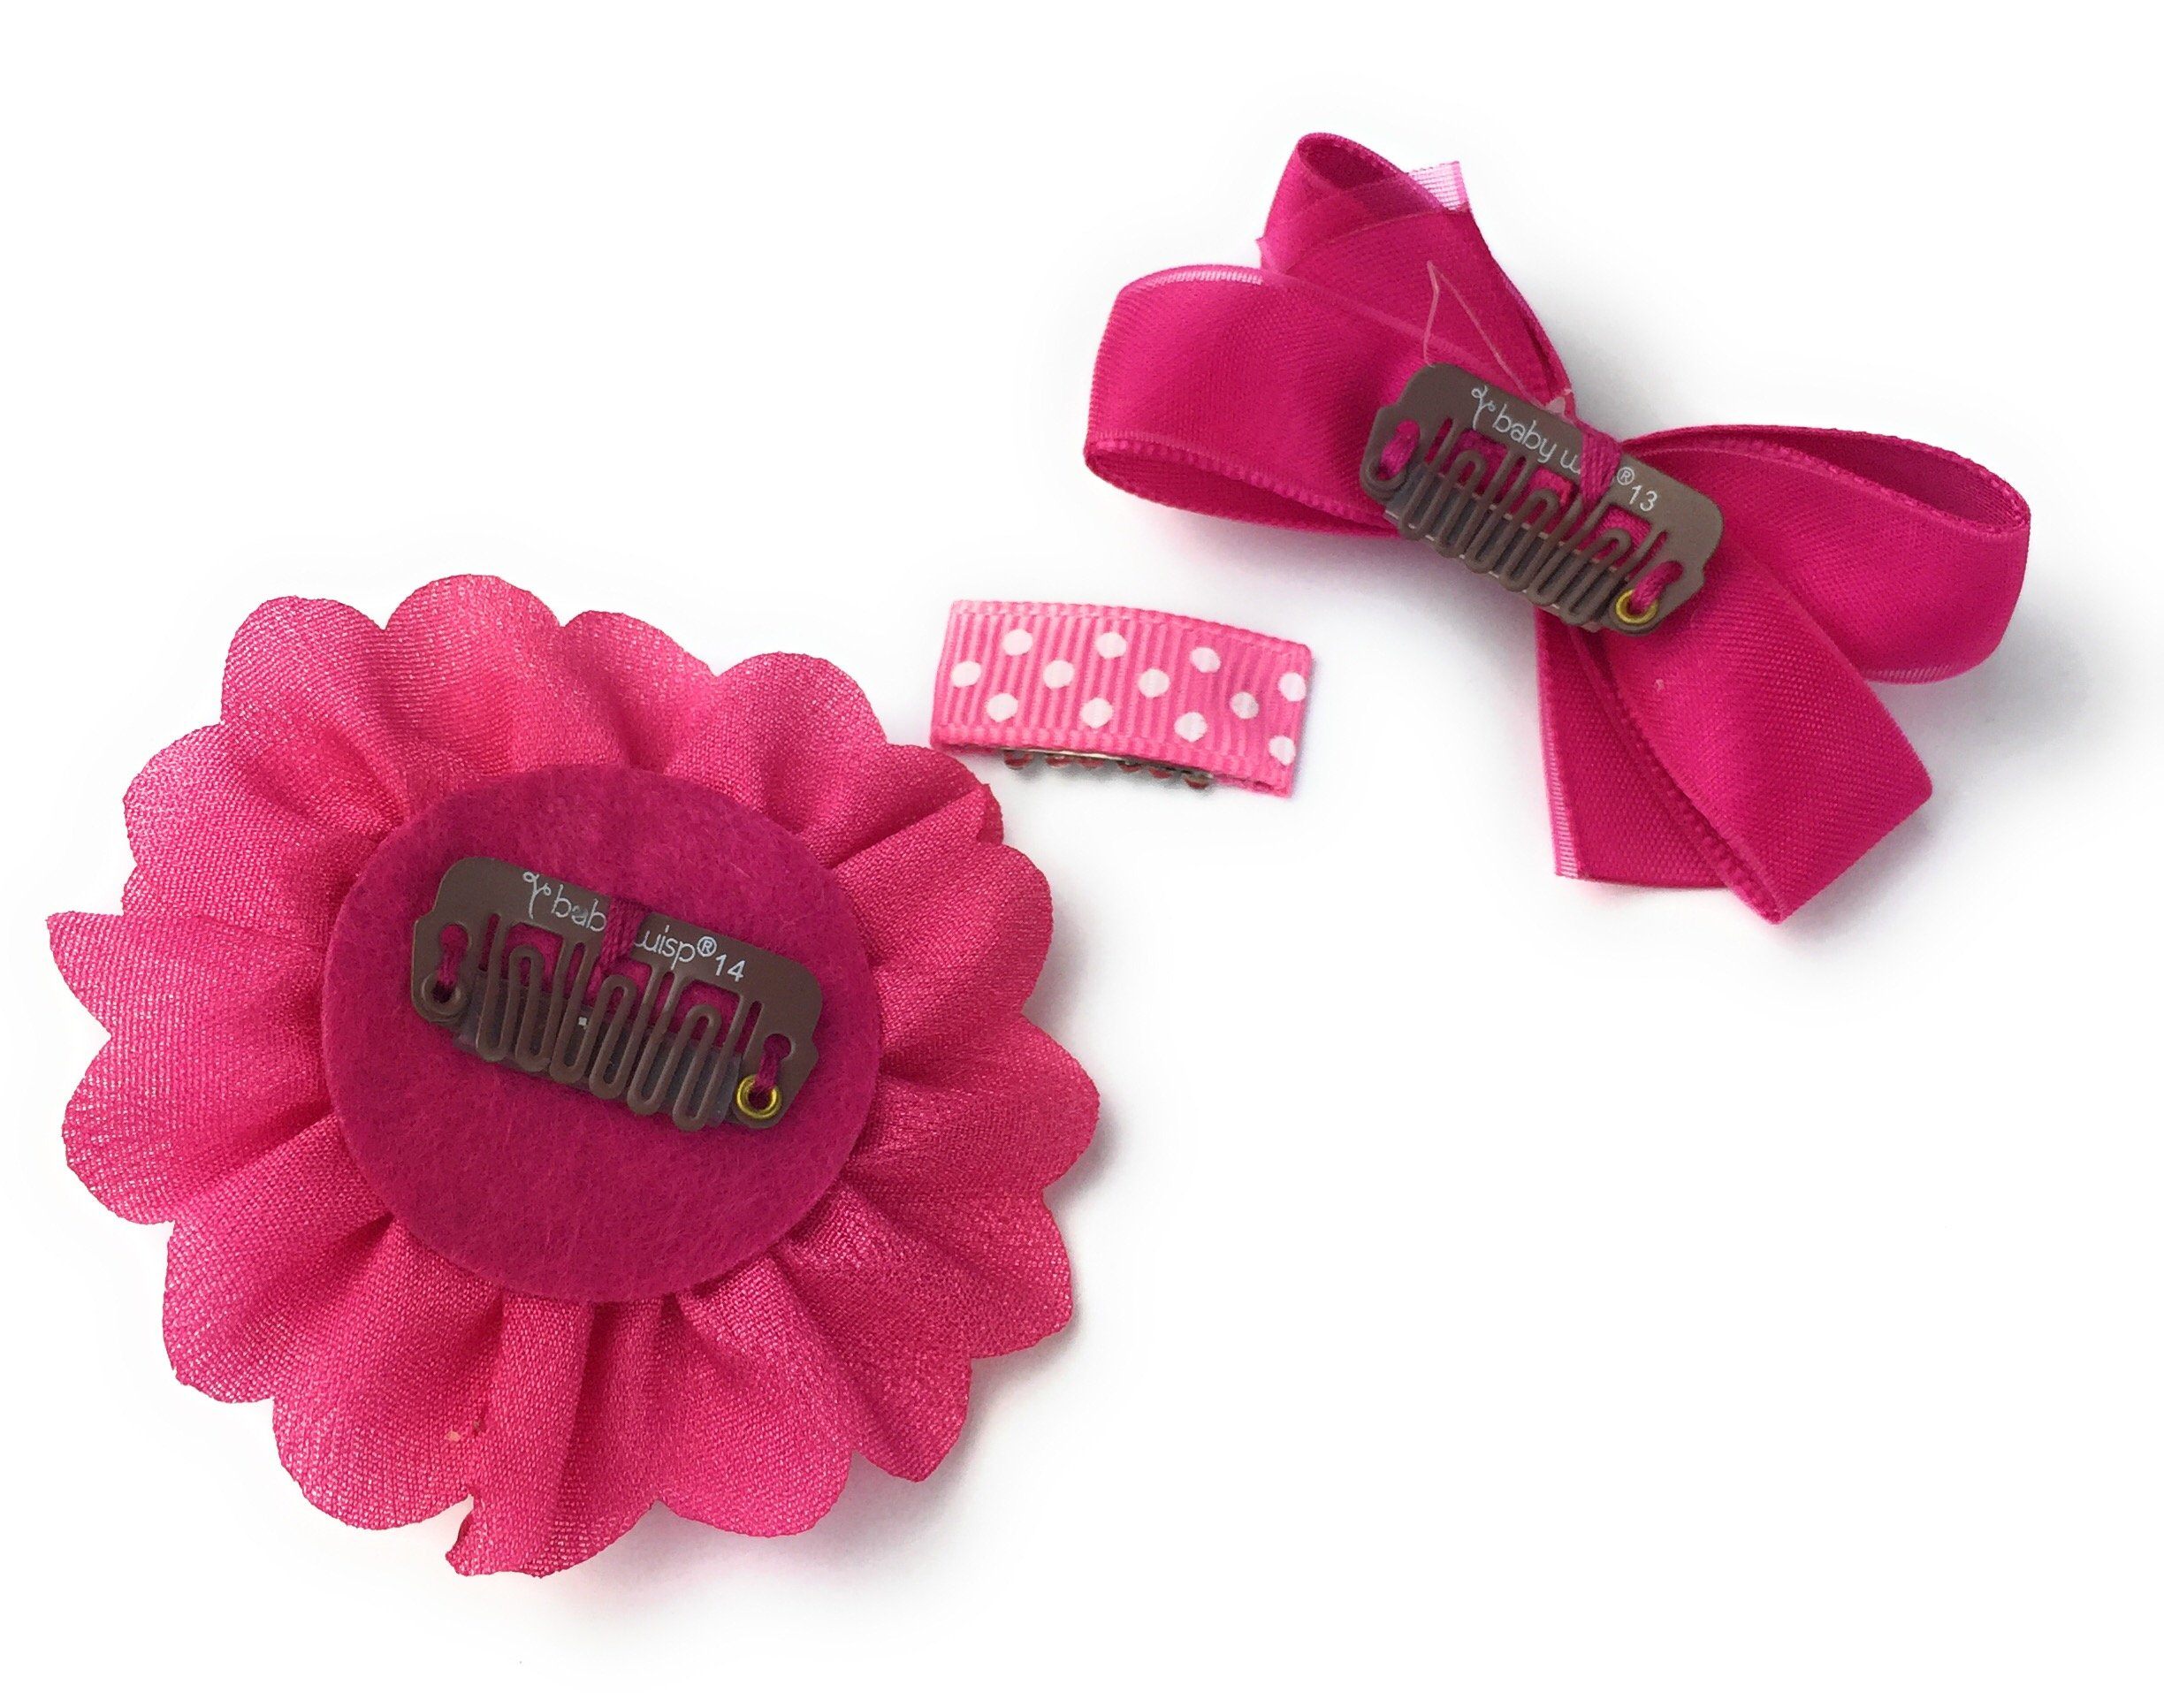 Baby Wisp Mini Latch Clip Satin Boutique Bow Grosgrain Ribbon Clip Flower Accessory Baby Girl Gift Set (Fuchsia) by Baby Wisp (Image #10)